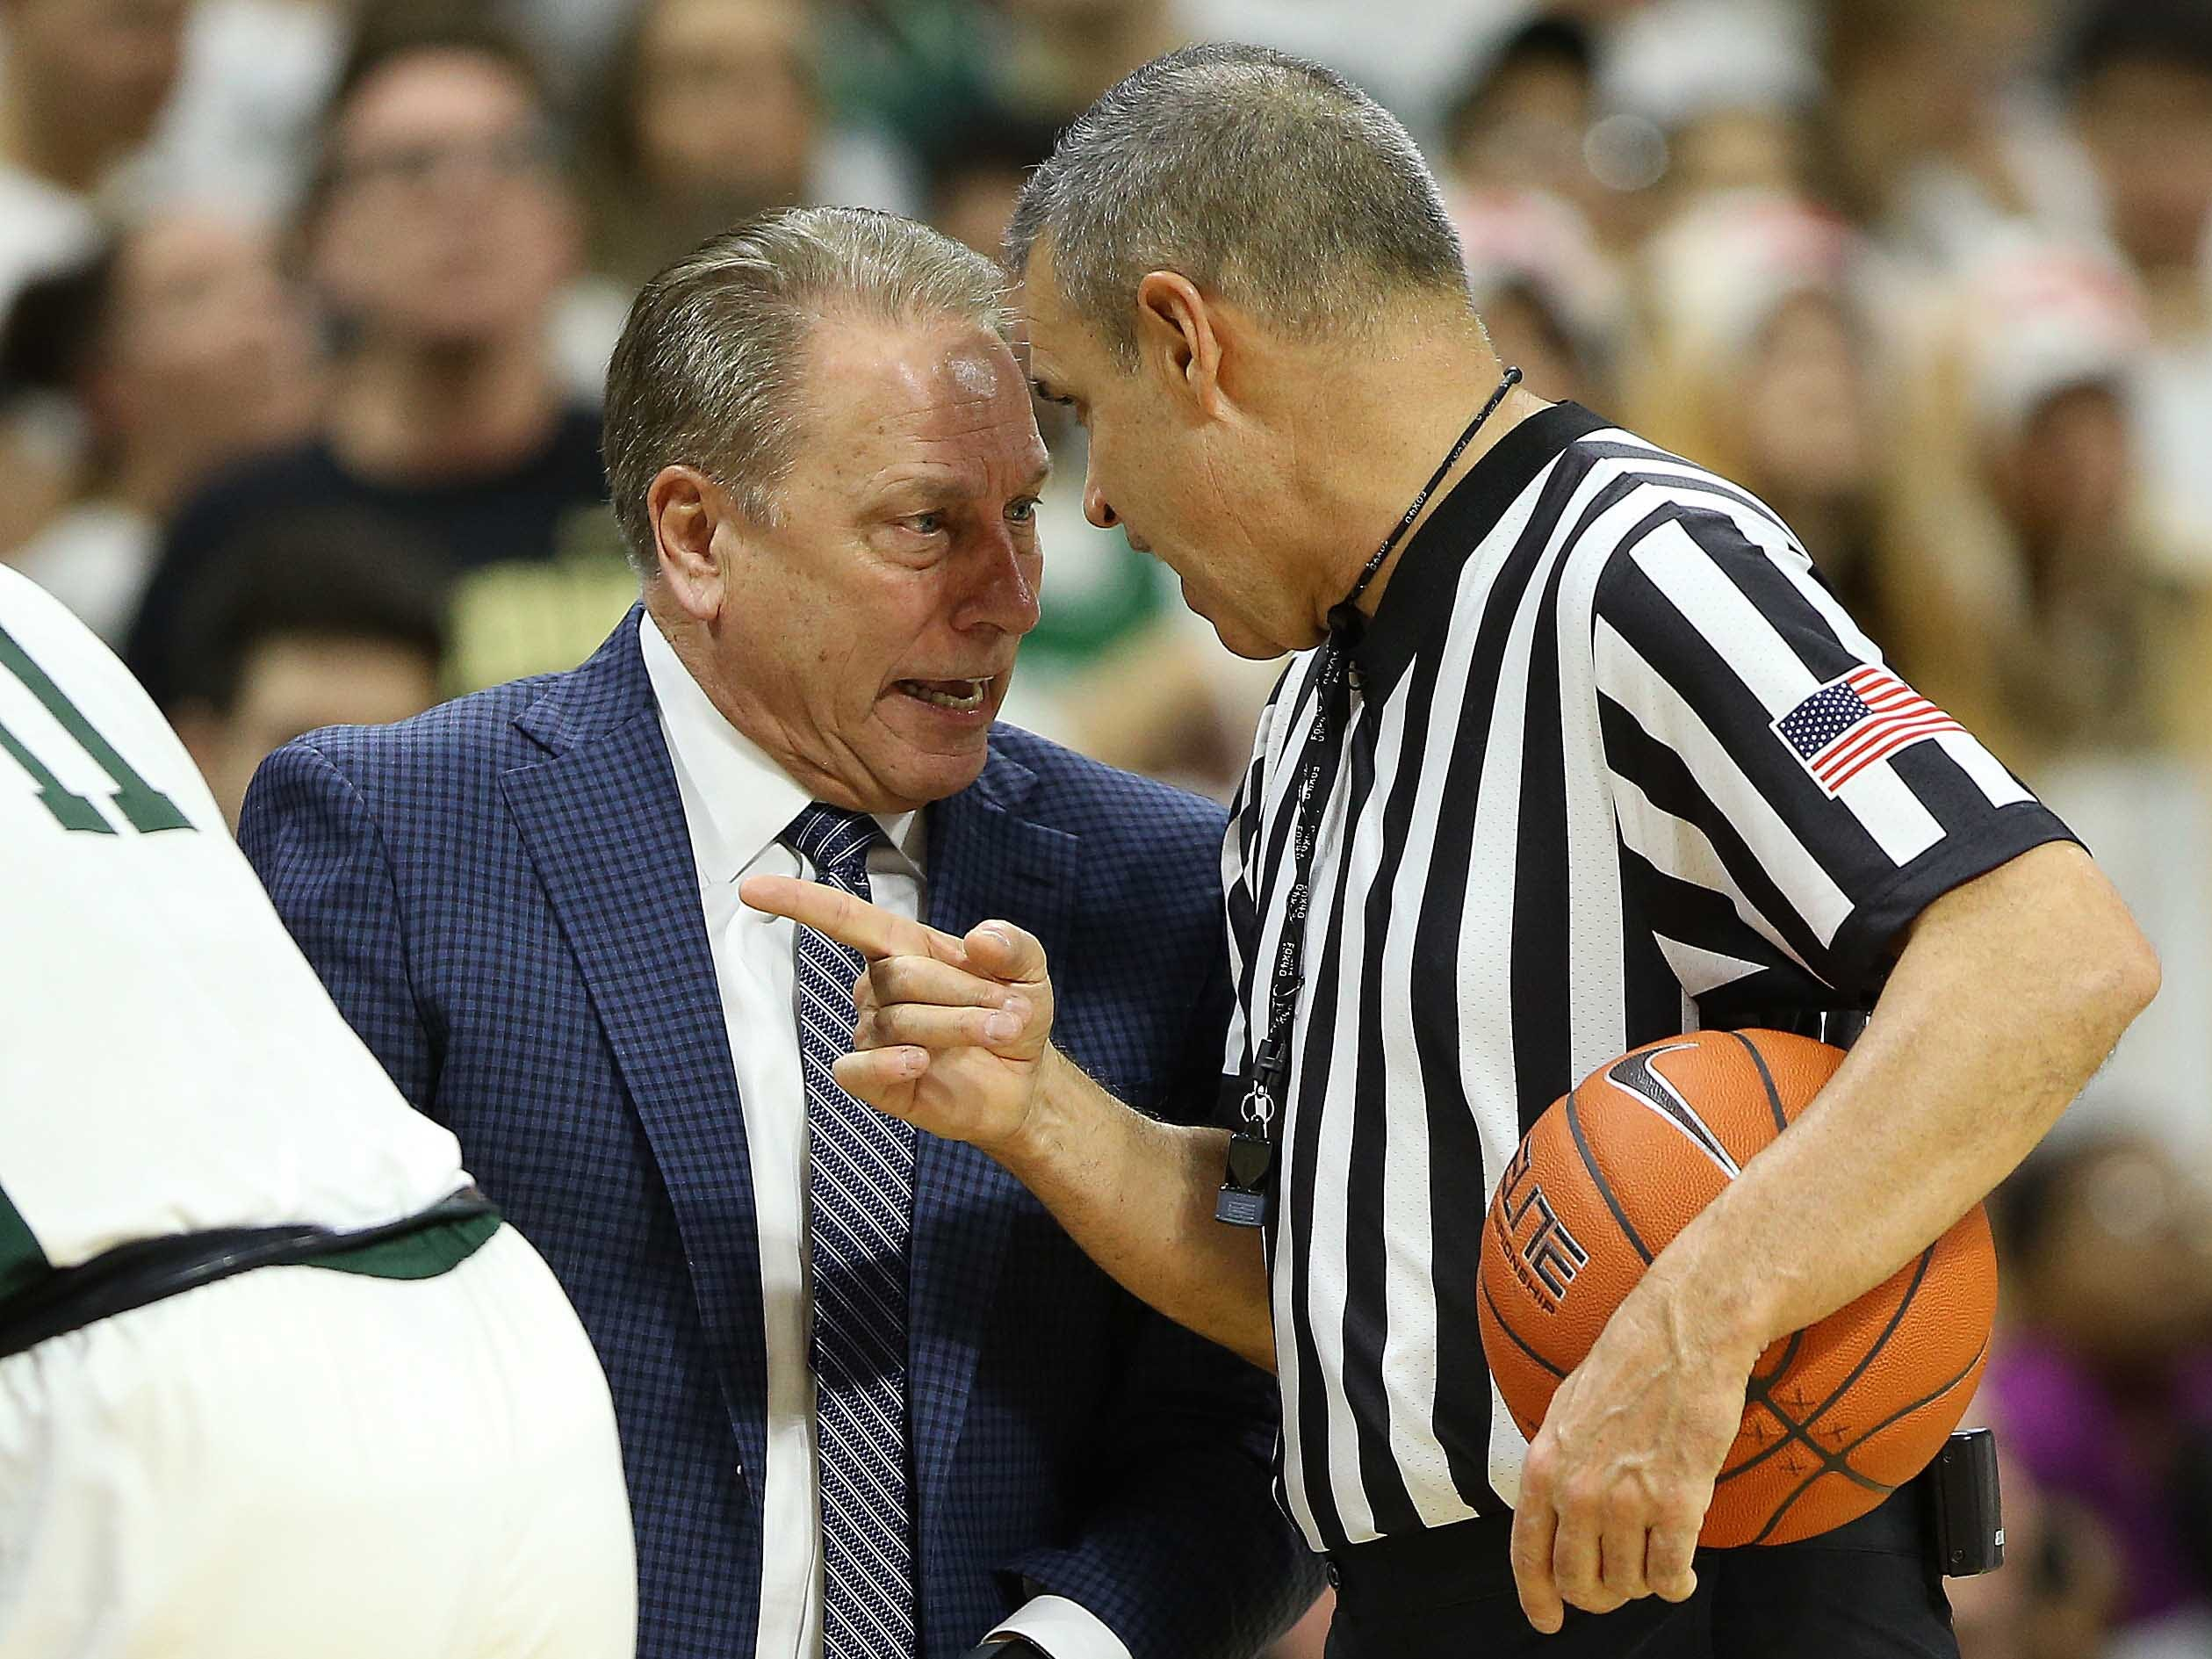 Jan 8, 2019; East Lansing, MI, USA; Official Rob Rilley and Michigan State Spartans head coach Tom Izzo argue a call  during the second half of a game against the Purdue Boilermakers at the Breslin Center. Mandatory Credit: Mike Carter-USA TODAY Sports